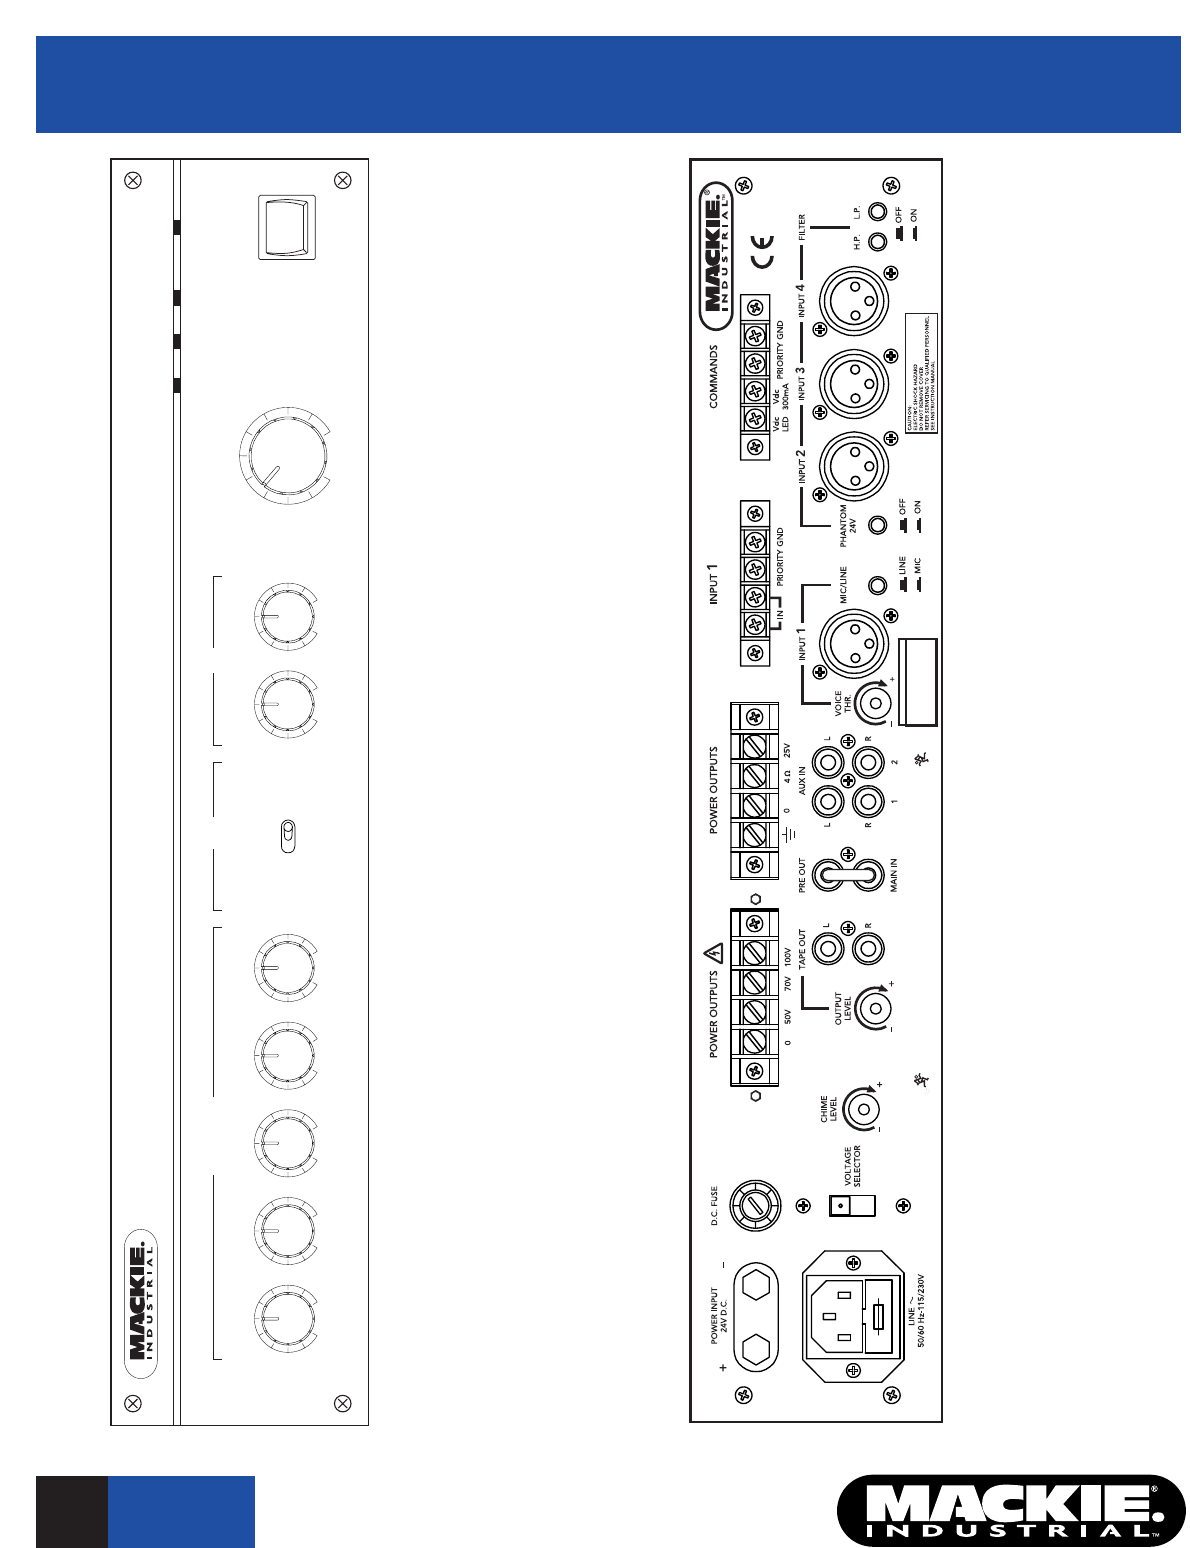 page 3 of mackie stereo amplifier am4060 user guide manualsonline com rh audio manualsonline com mackie dl1608 user guide mackie mix5 user guide